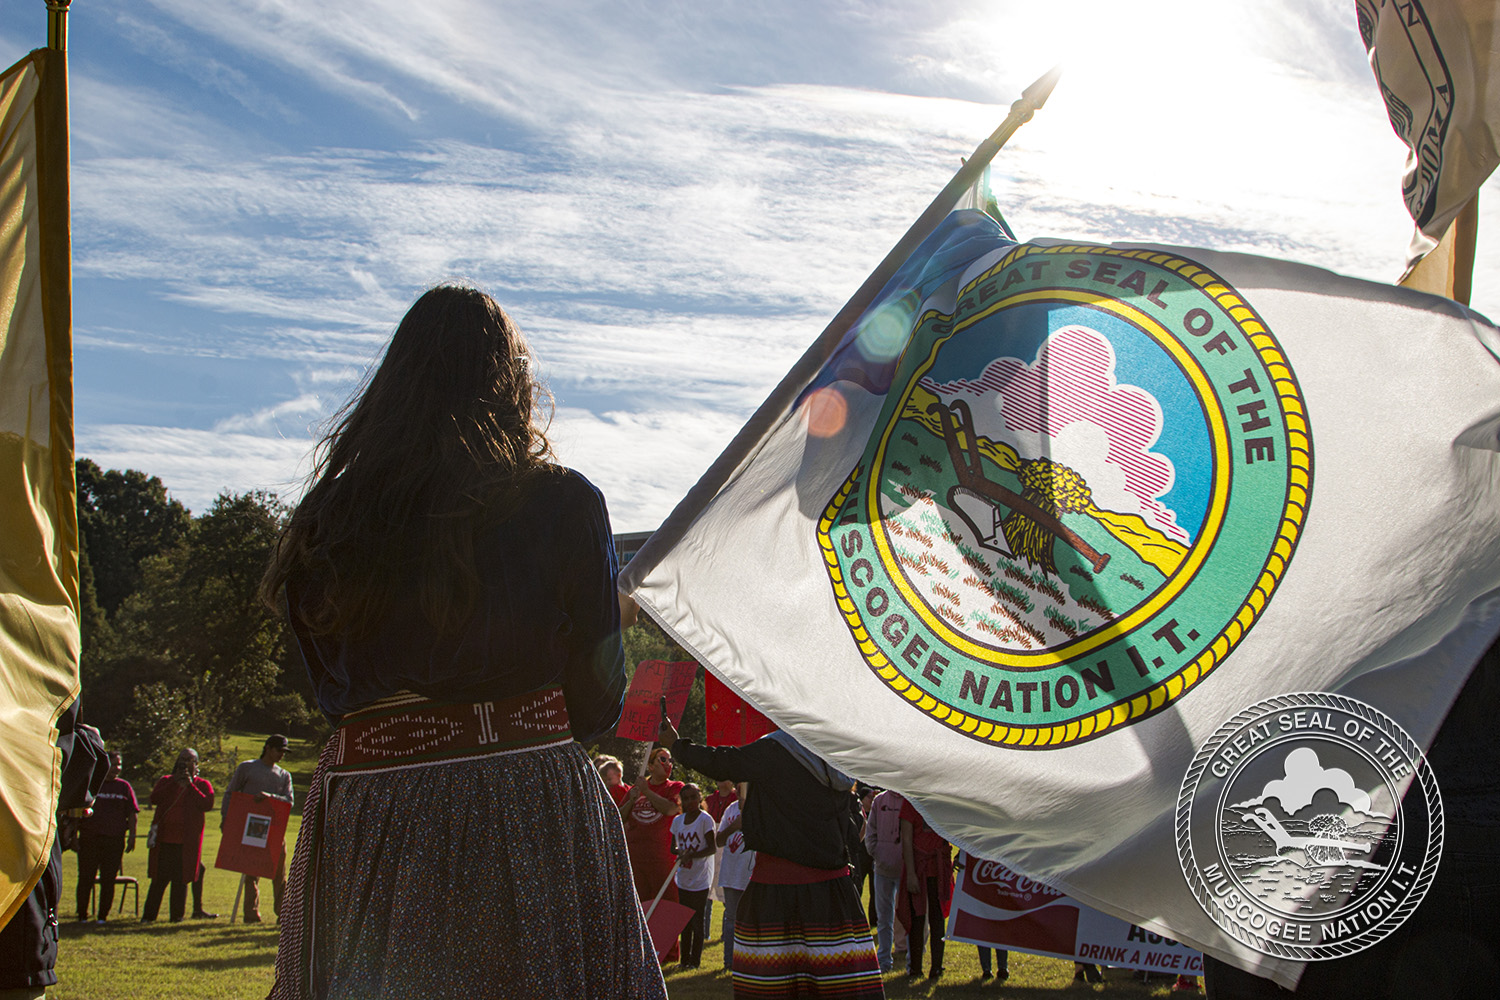 Municipalities celebrate historic partnership by honoring indigenous culture